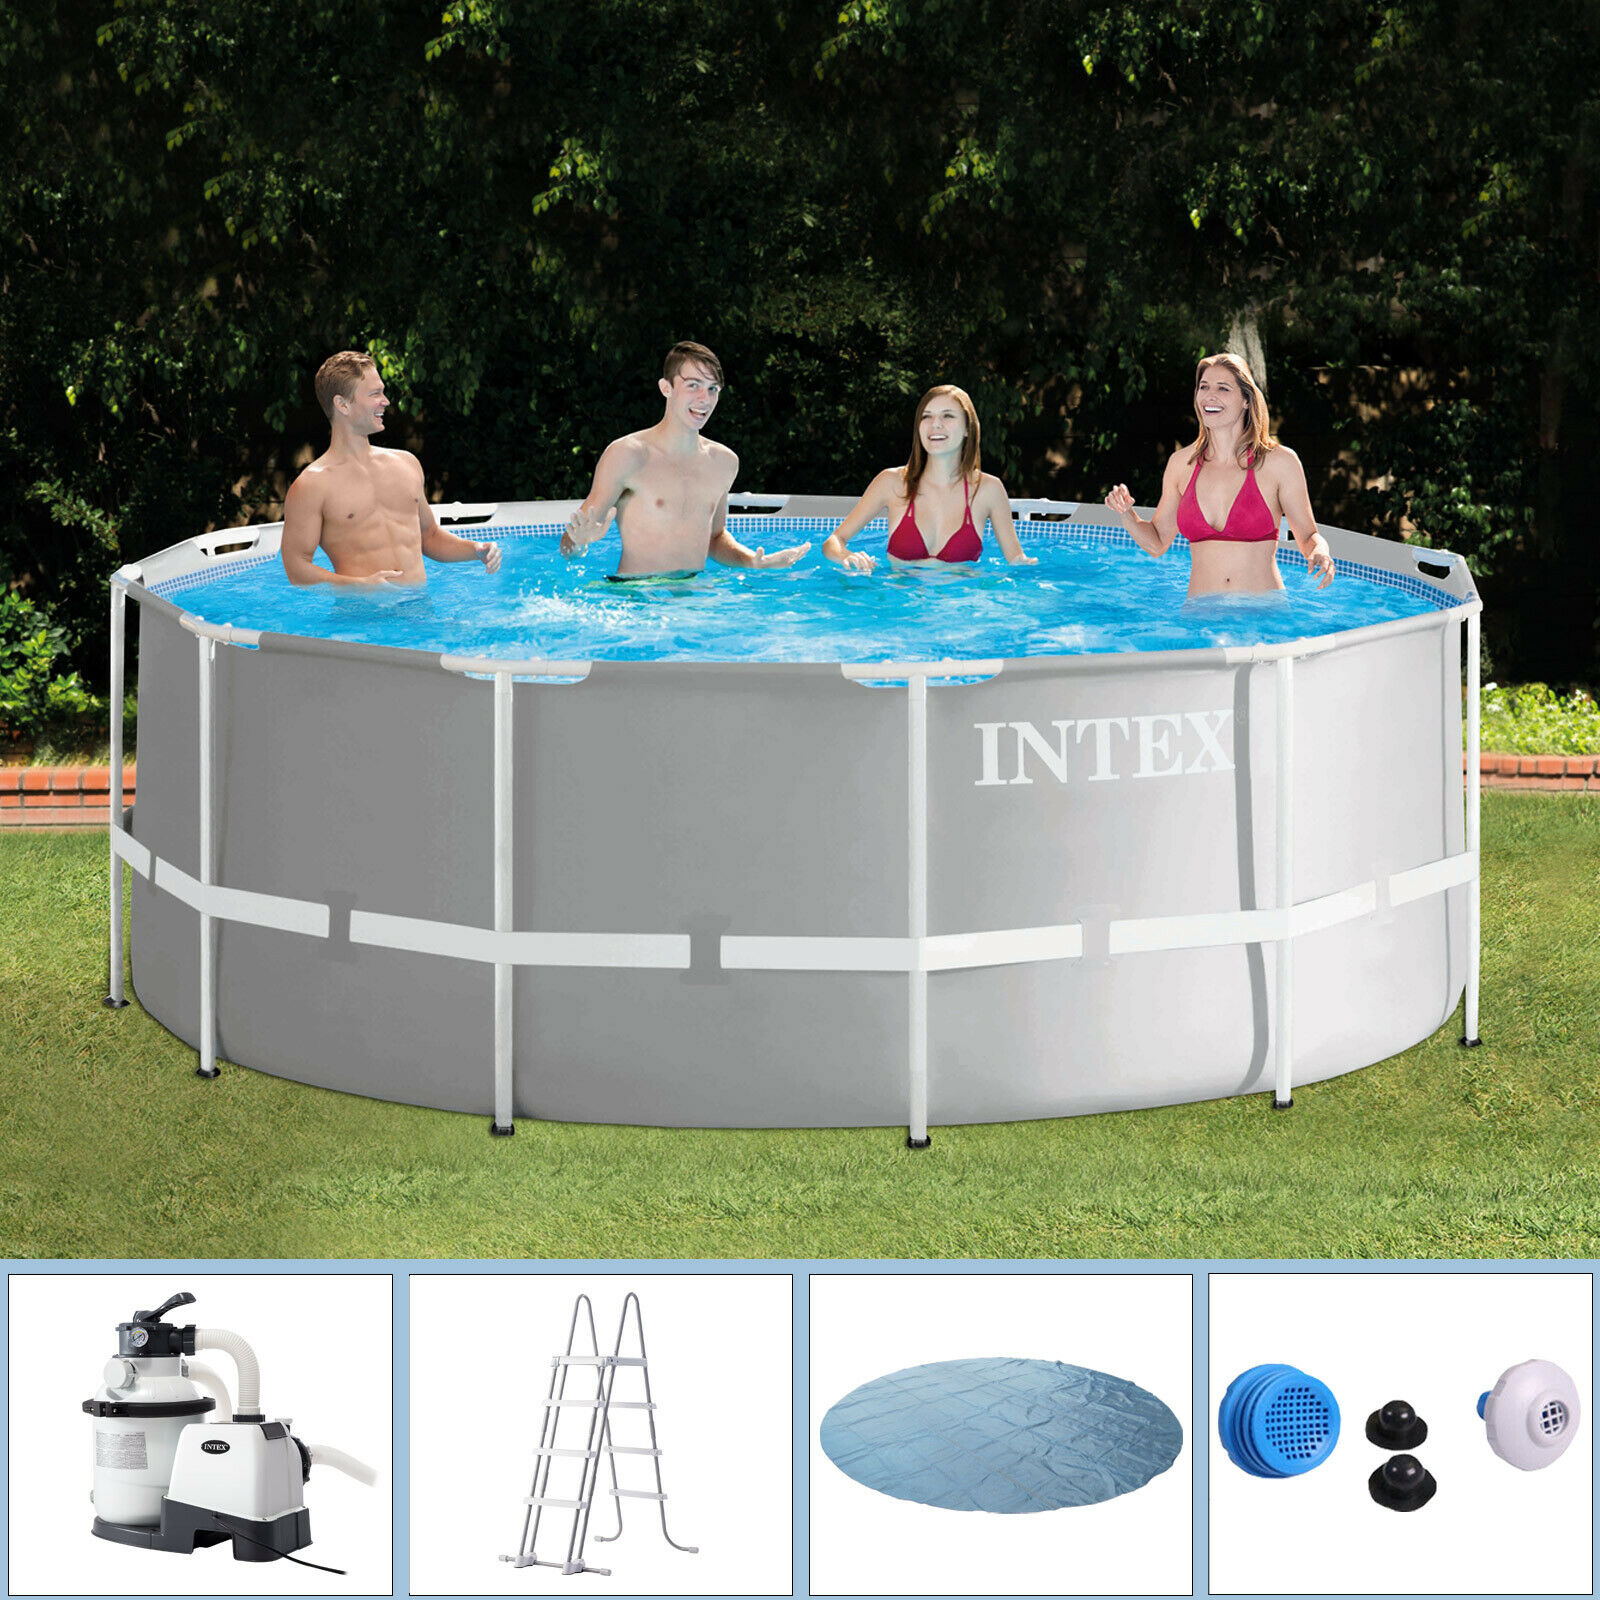 Intex 366x122 komplettset swimming pool schwimmbad frame metal stahlwand eur for Intex swimming pools australia